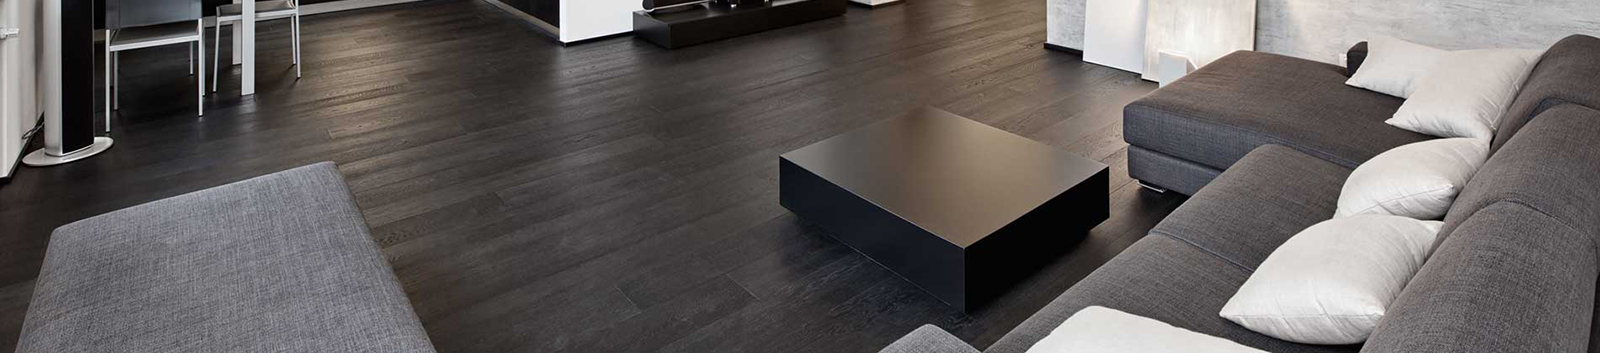 find-floor-heating-header-b